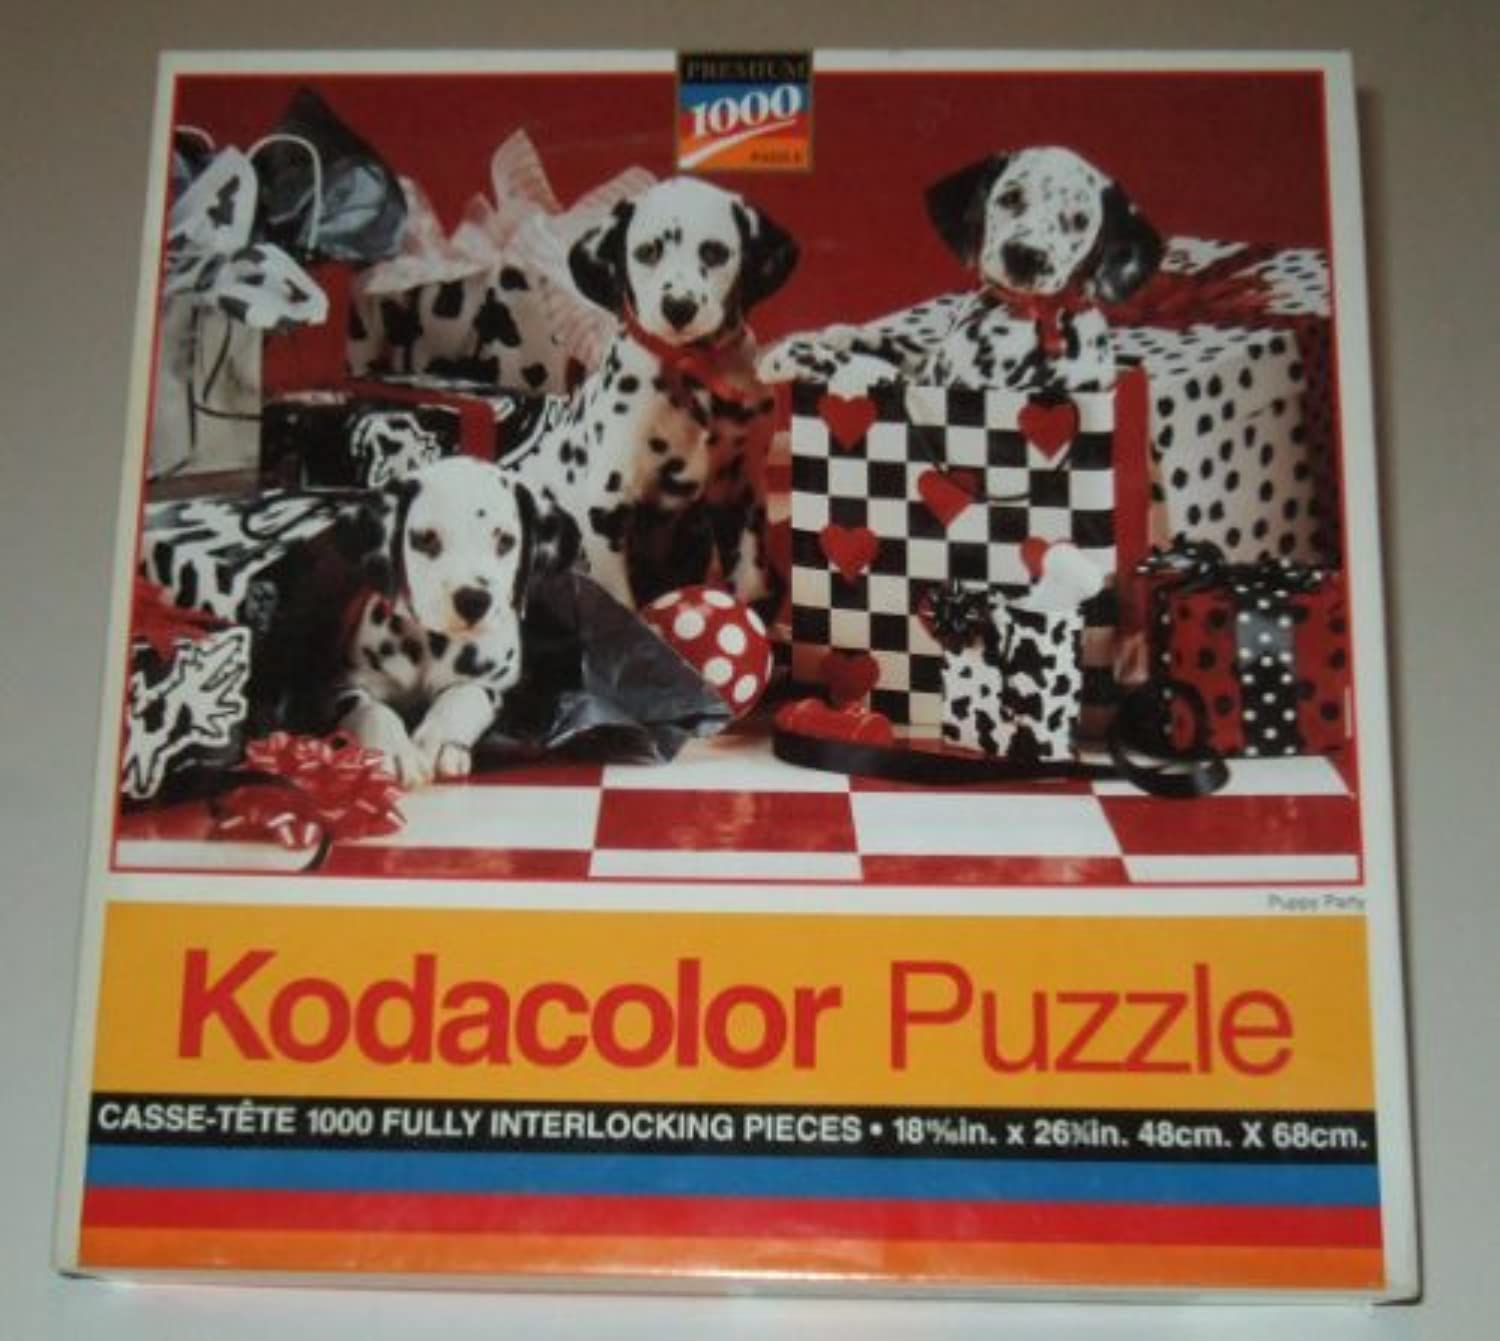 Kodacolor 1000 Piece Jigsaw Puzzle  PUPPY PARTY by Kodacolor